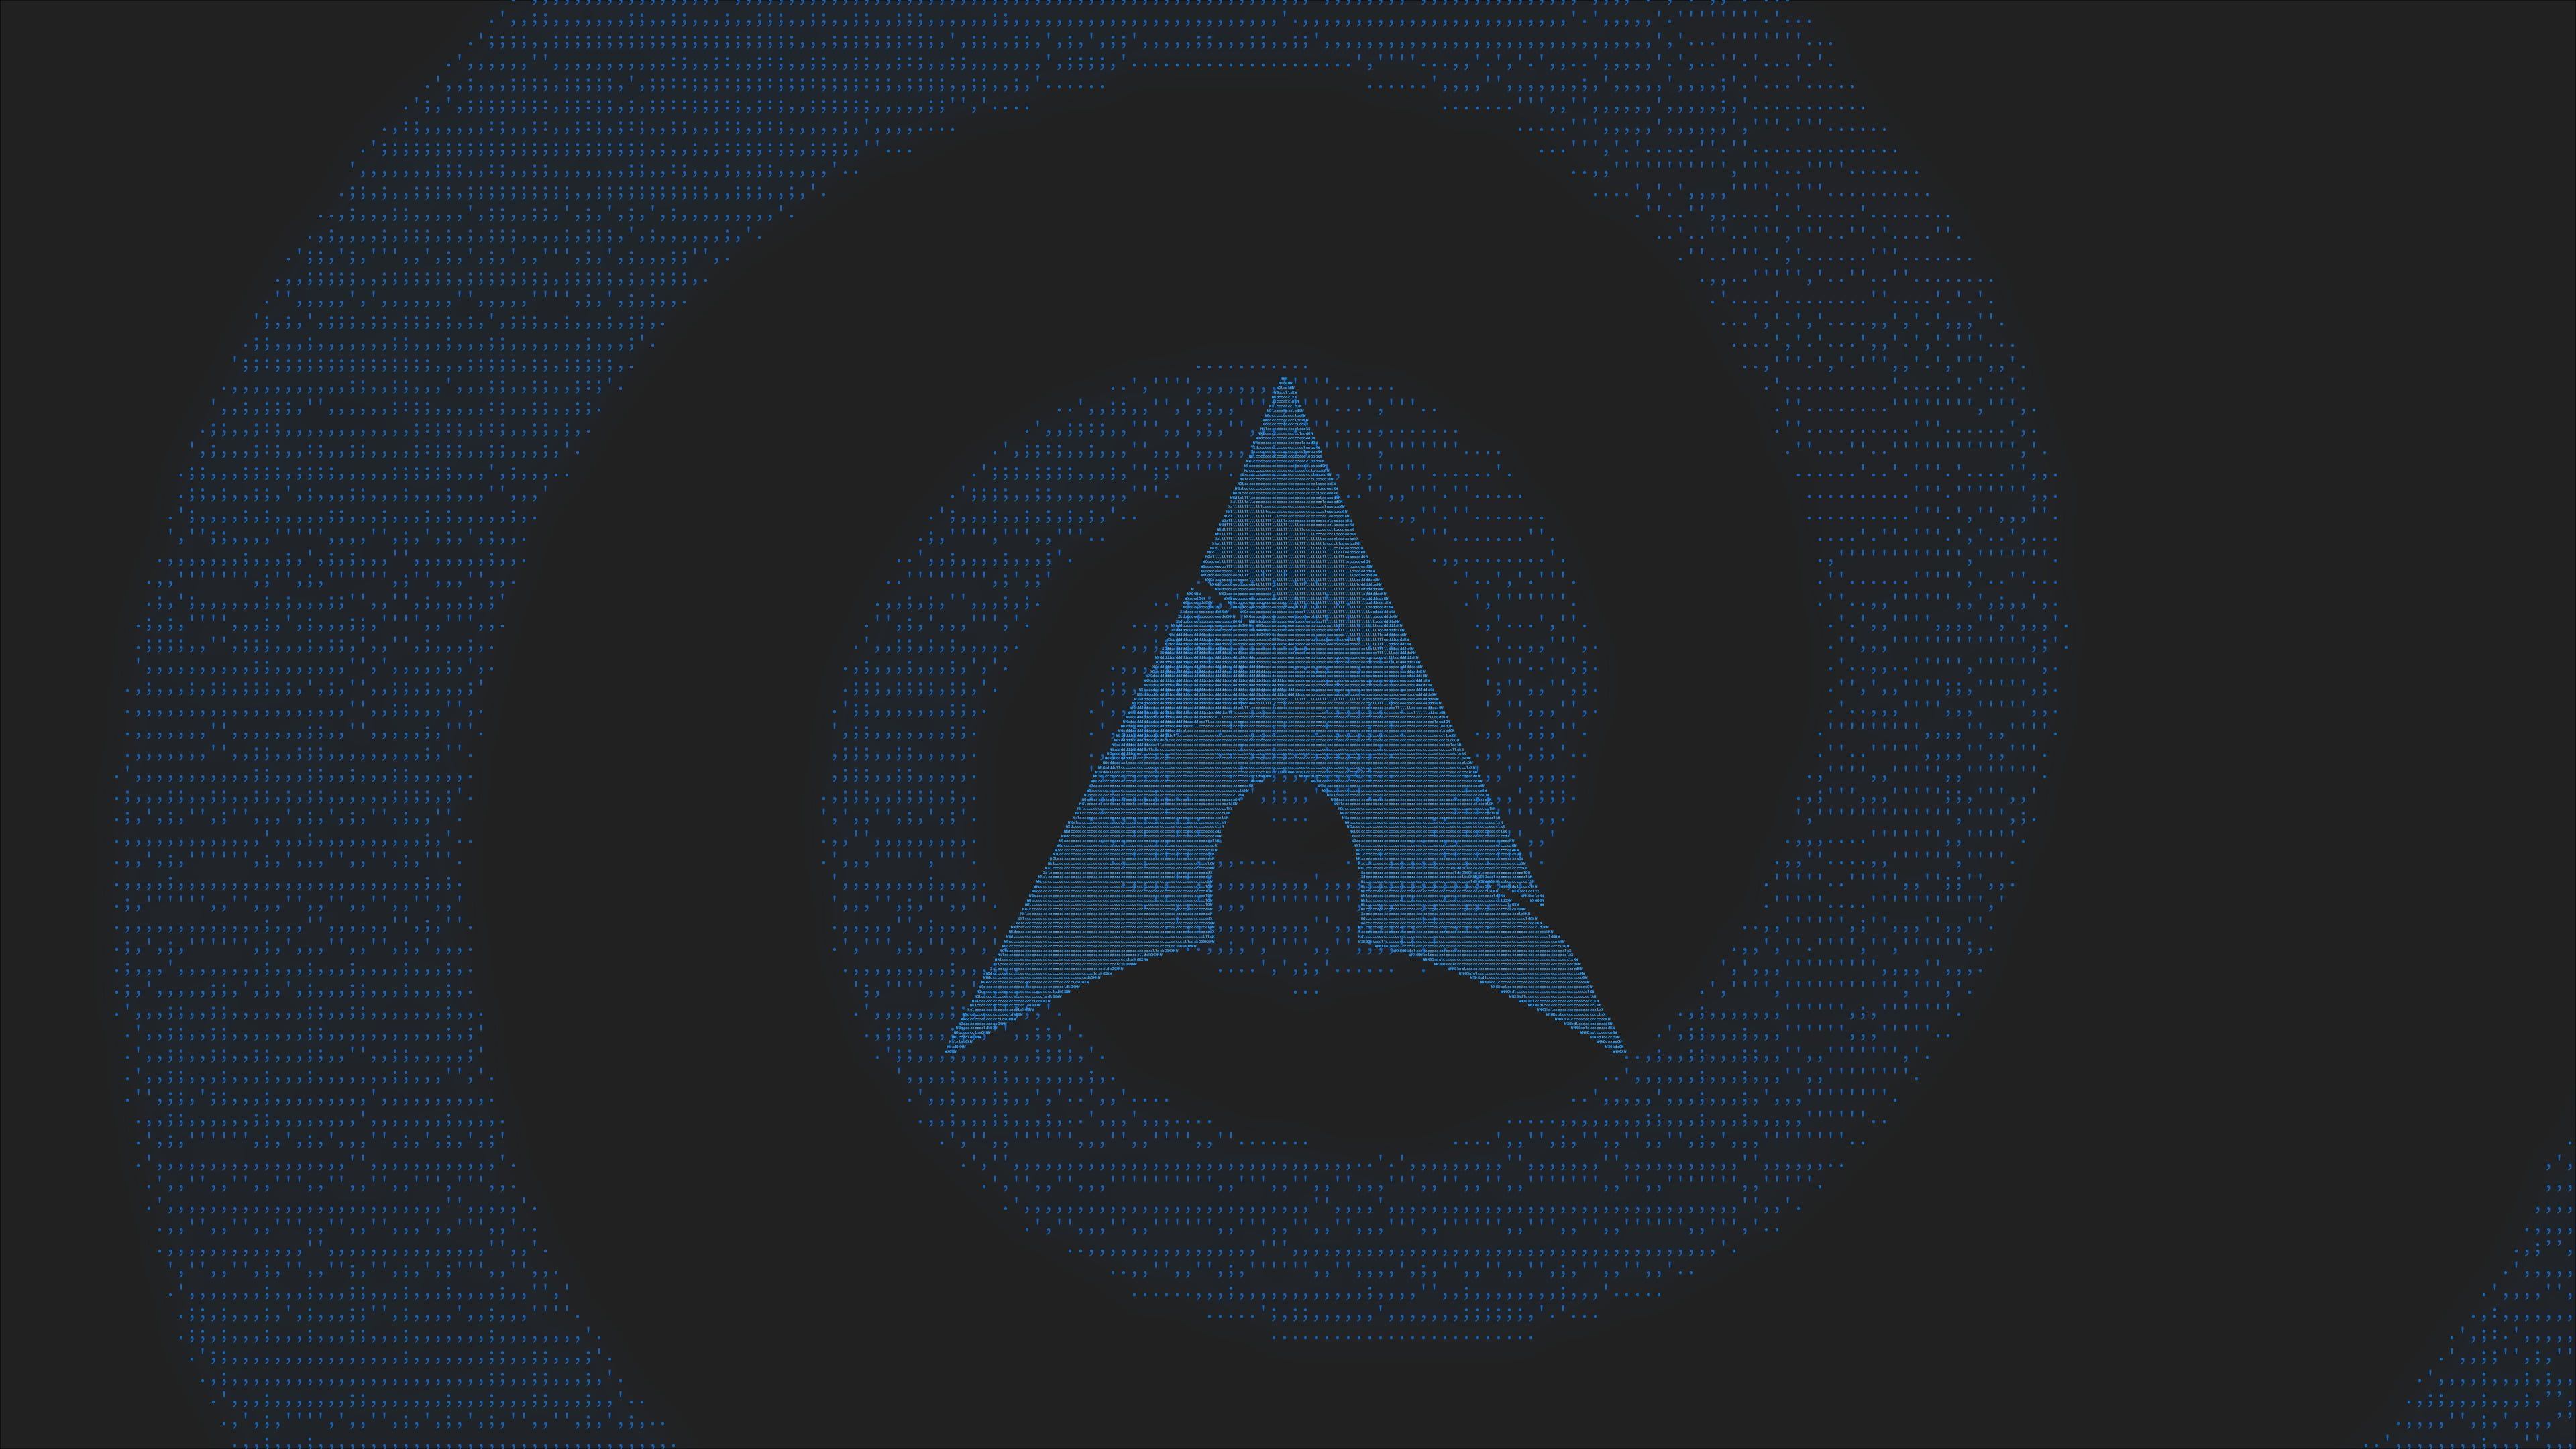 Arch Linux Material Minimal Minimalism Ascii Art Neon Glow Text Material Style Linux 4k Wallpaper Hdwallpaper D Ascii Art Arch Linux Neon Glow Wallpaper